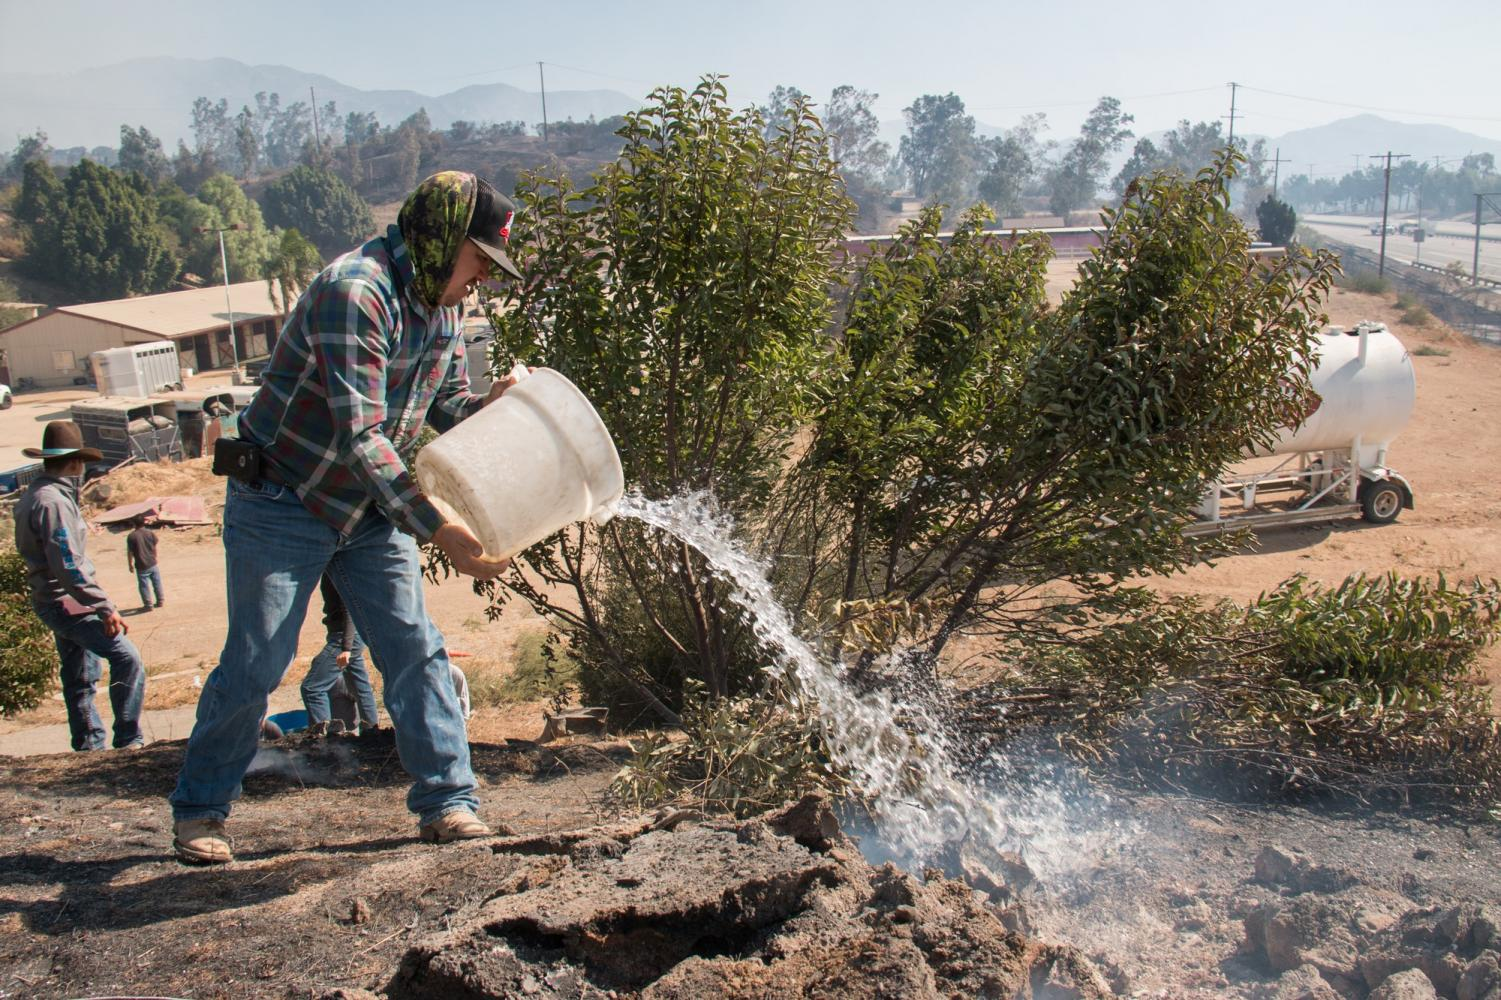 Alejo Morales, 35, pours water onto a smoking truck on the west side of the ranch. The fire was on their property on Thursday, but they were able to fight it off. Photo credit: Logan Bik